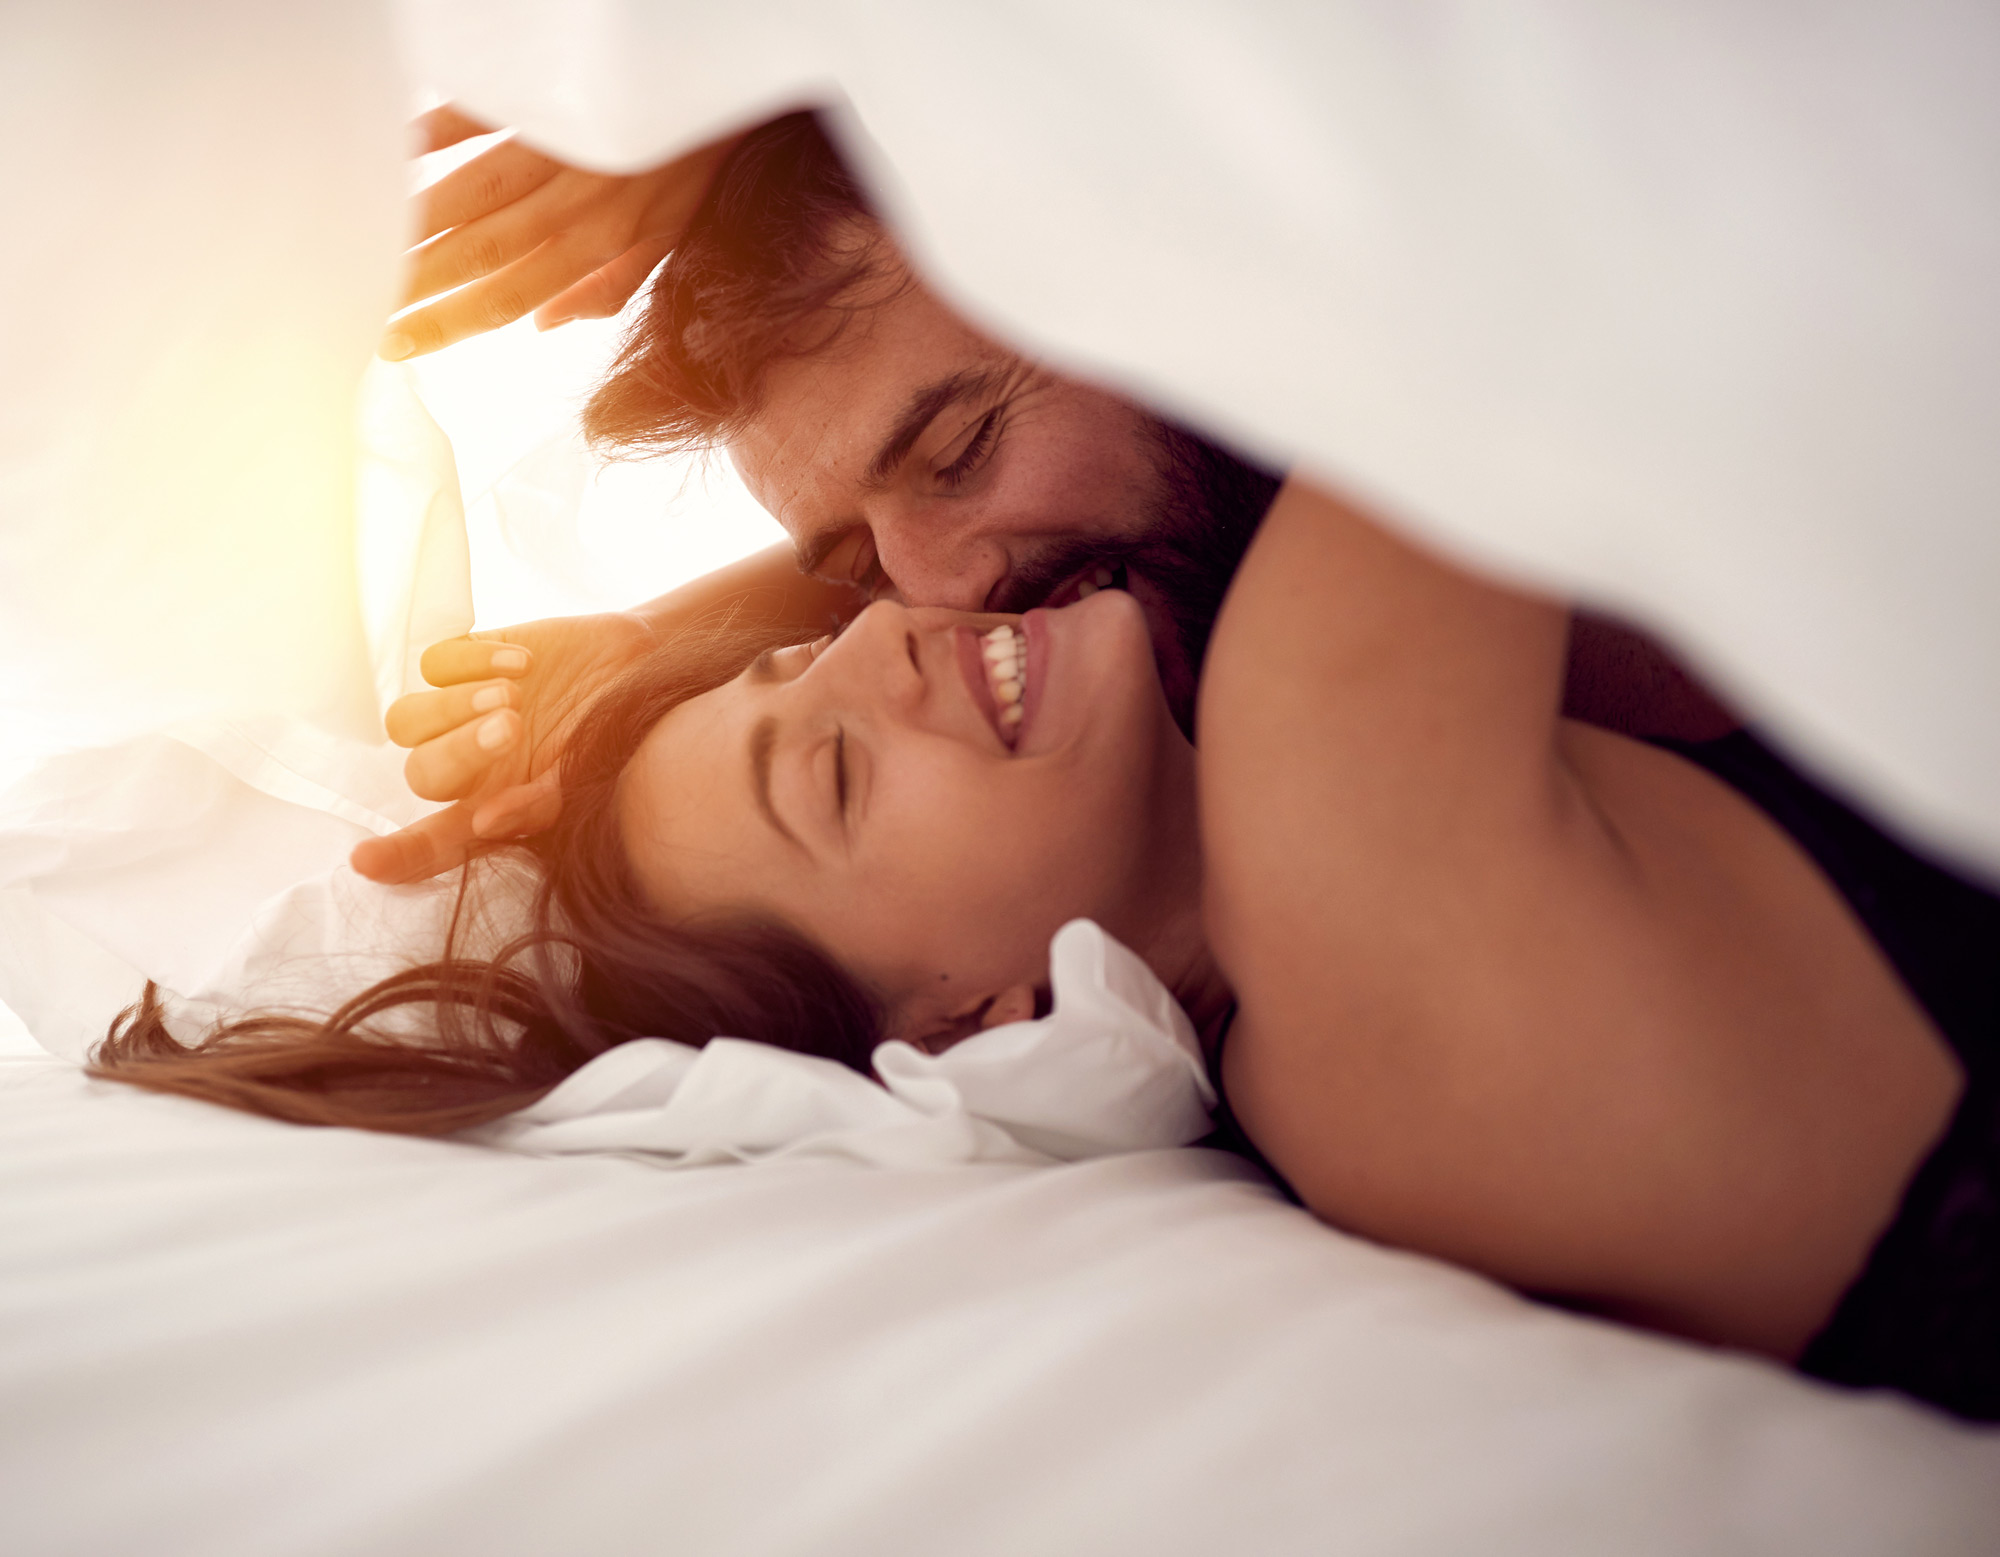 A man and woman romantically in bed